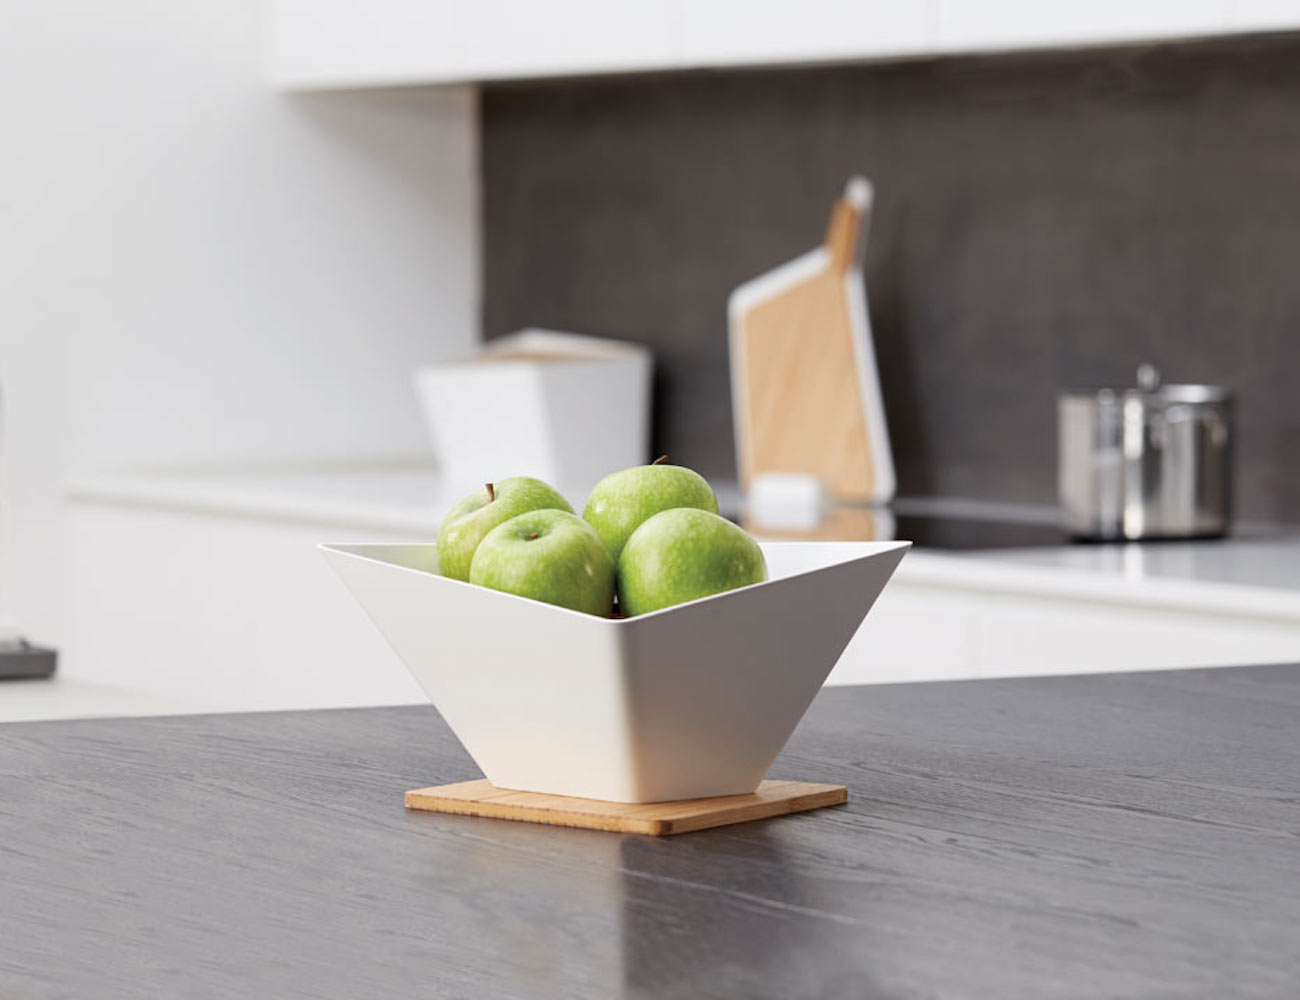 Draining Fruit Bowl by black+blum